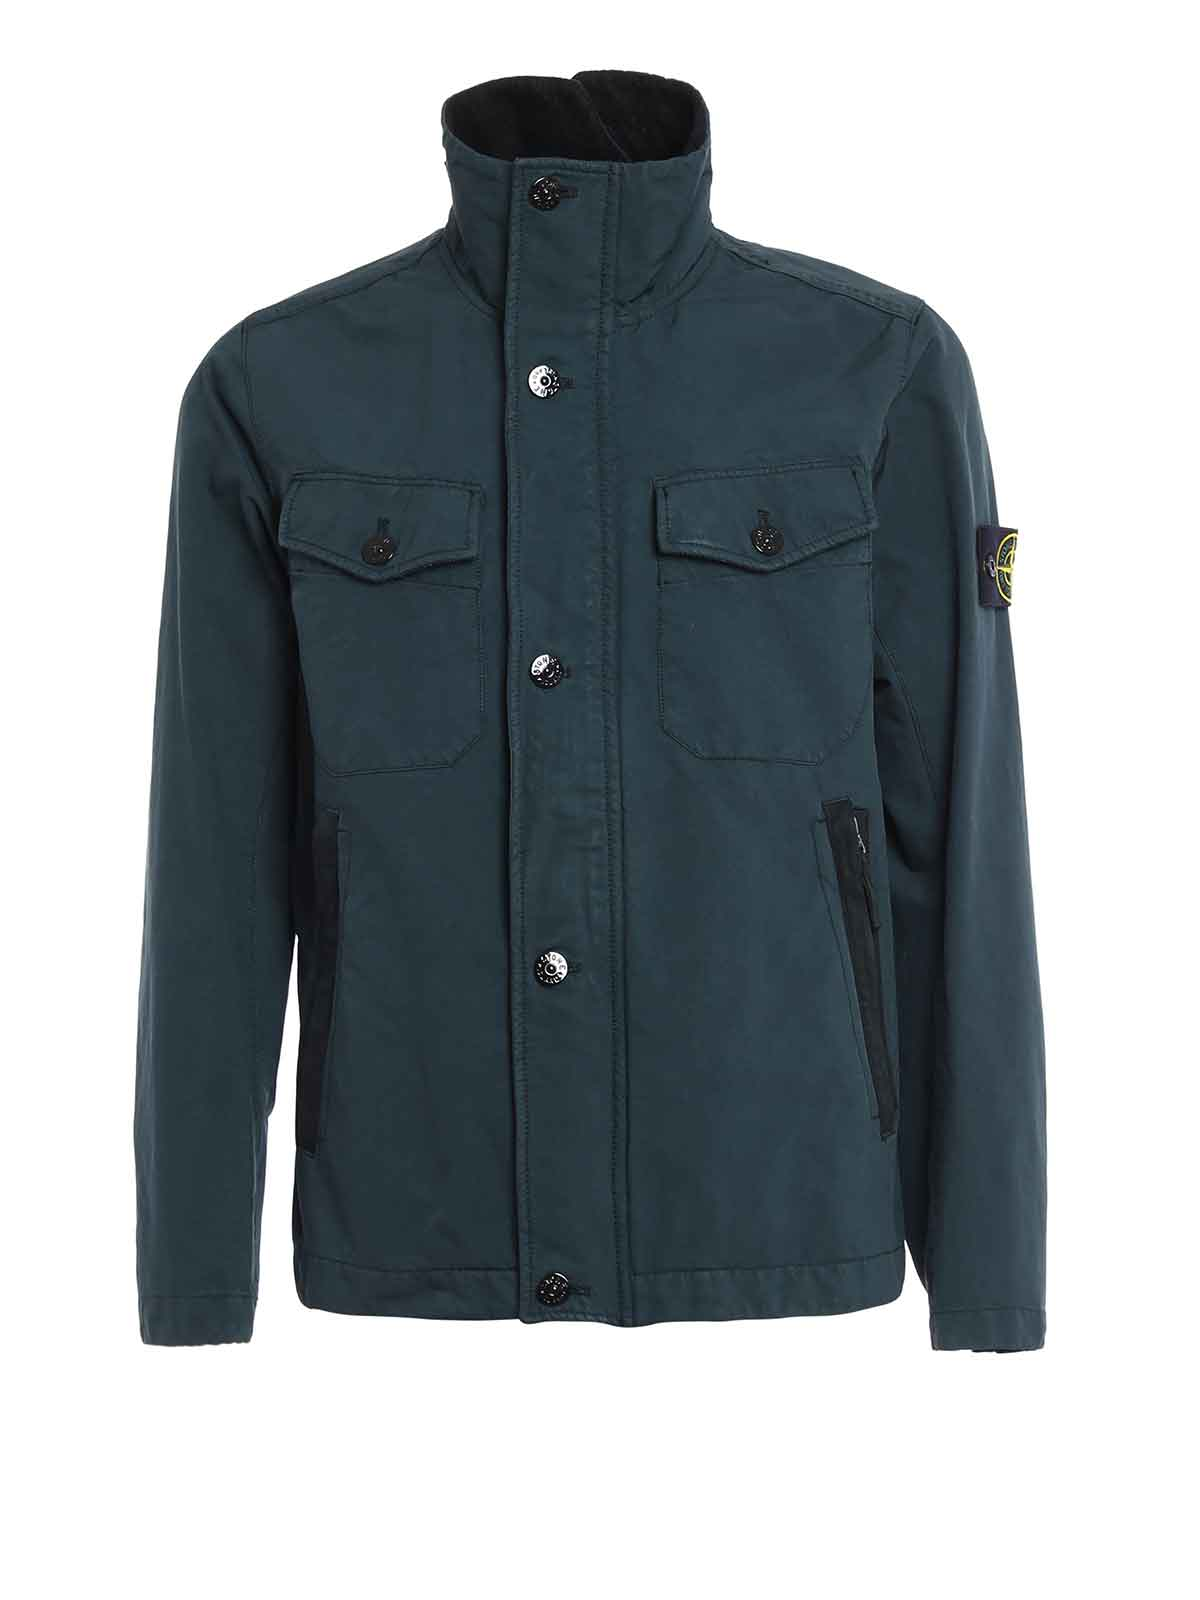 david tc field jacket by stone island casual jackets ikrix. Black Bedroom Furniture Sets. Home Design Ideas